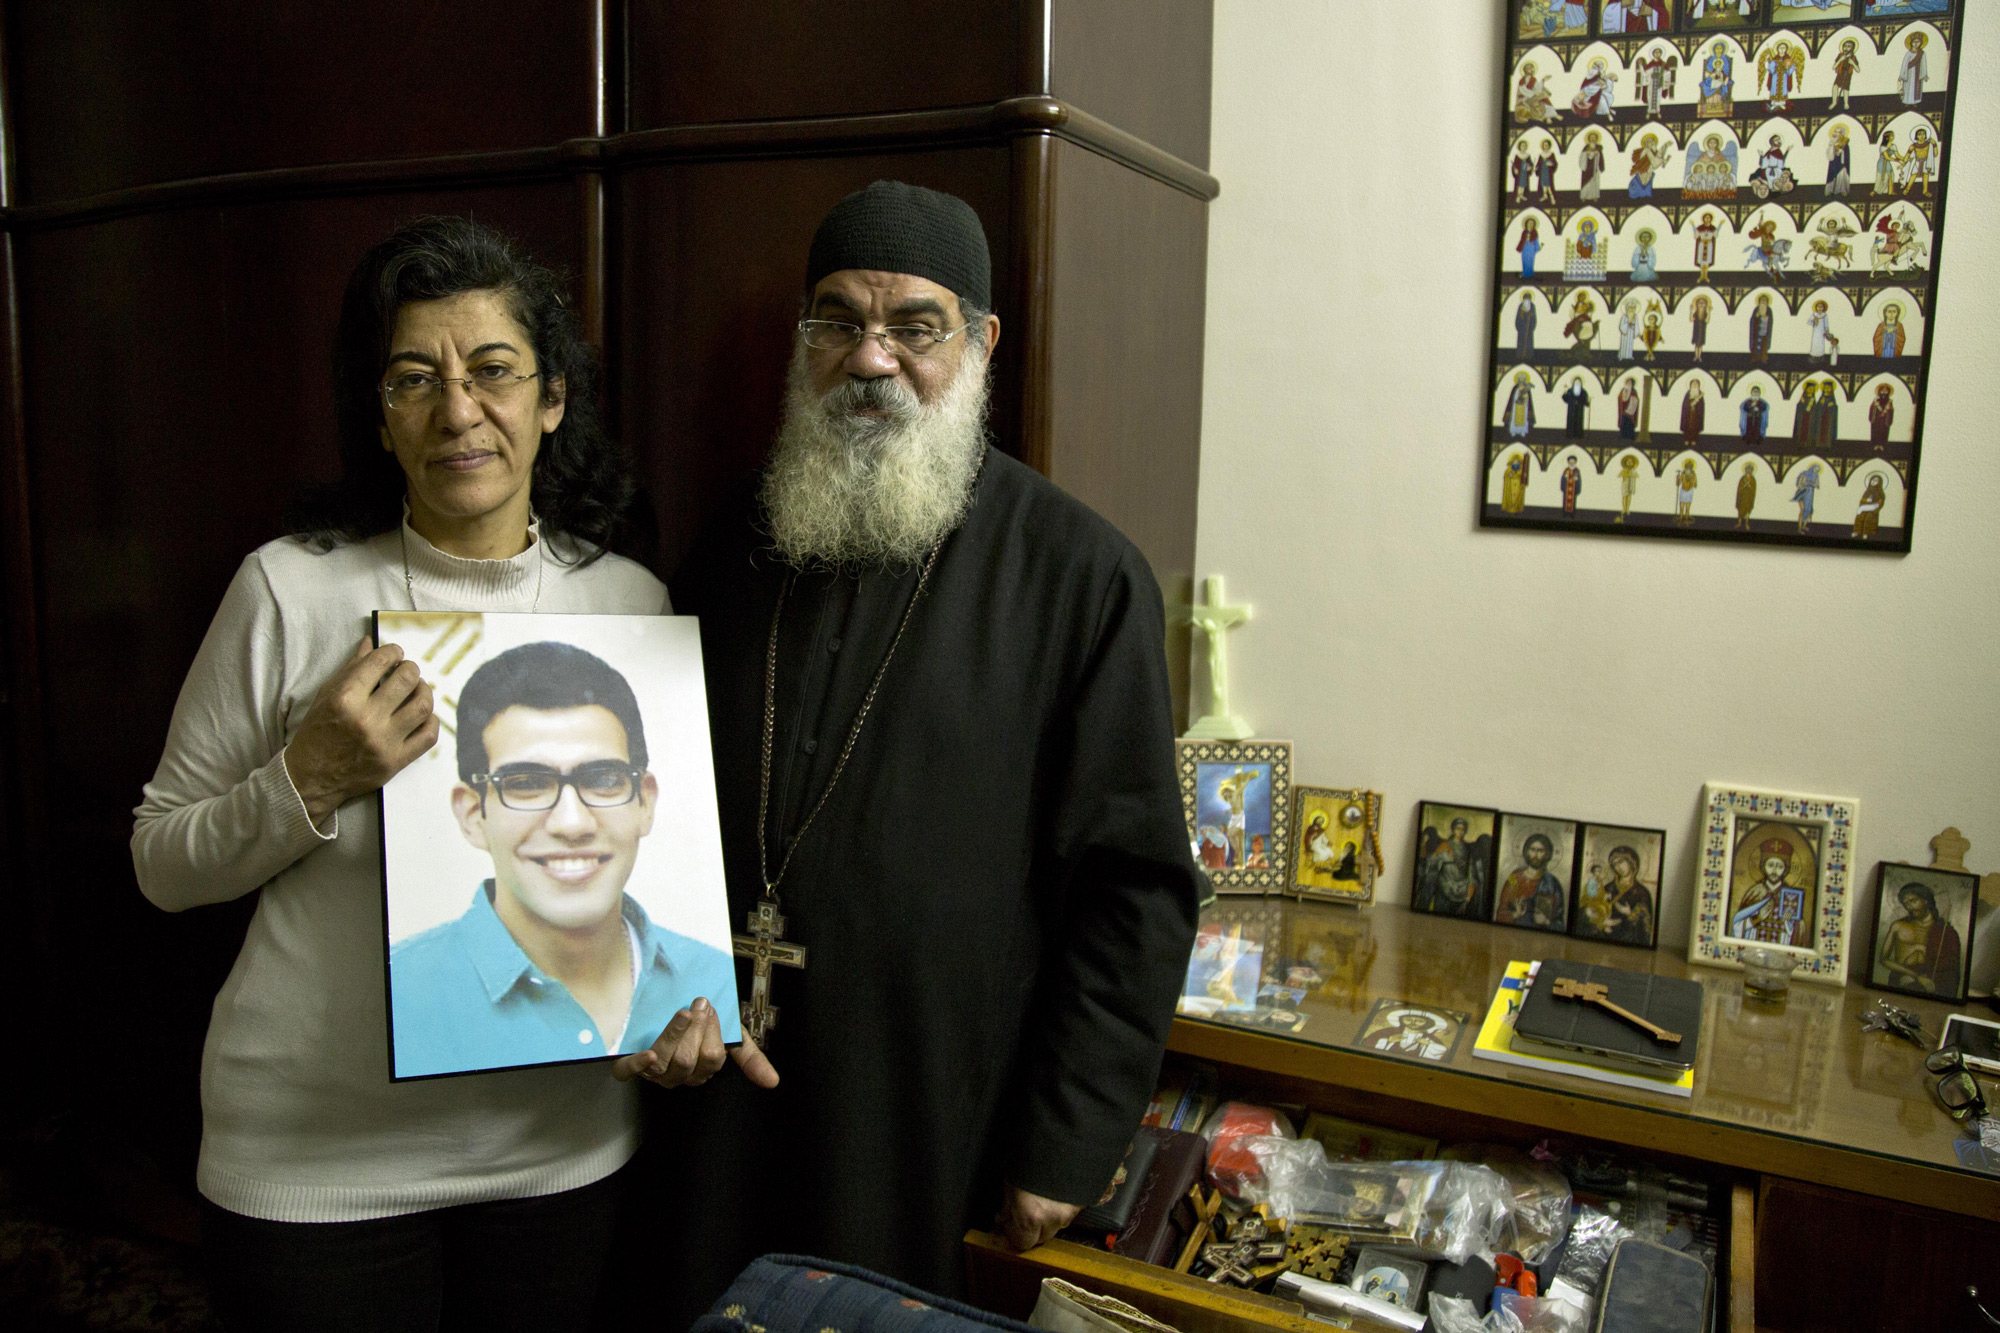 Priest Danial and his wife stand in the room of their son, Beshoy, who died during the suicide bombing in St. George Church in Egypt on Wednesday, April 12, 2017. (Photo by Roger Anis/GroundTruth)